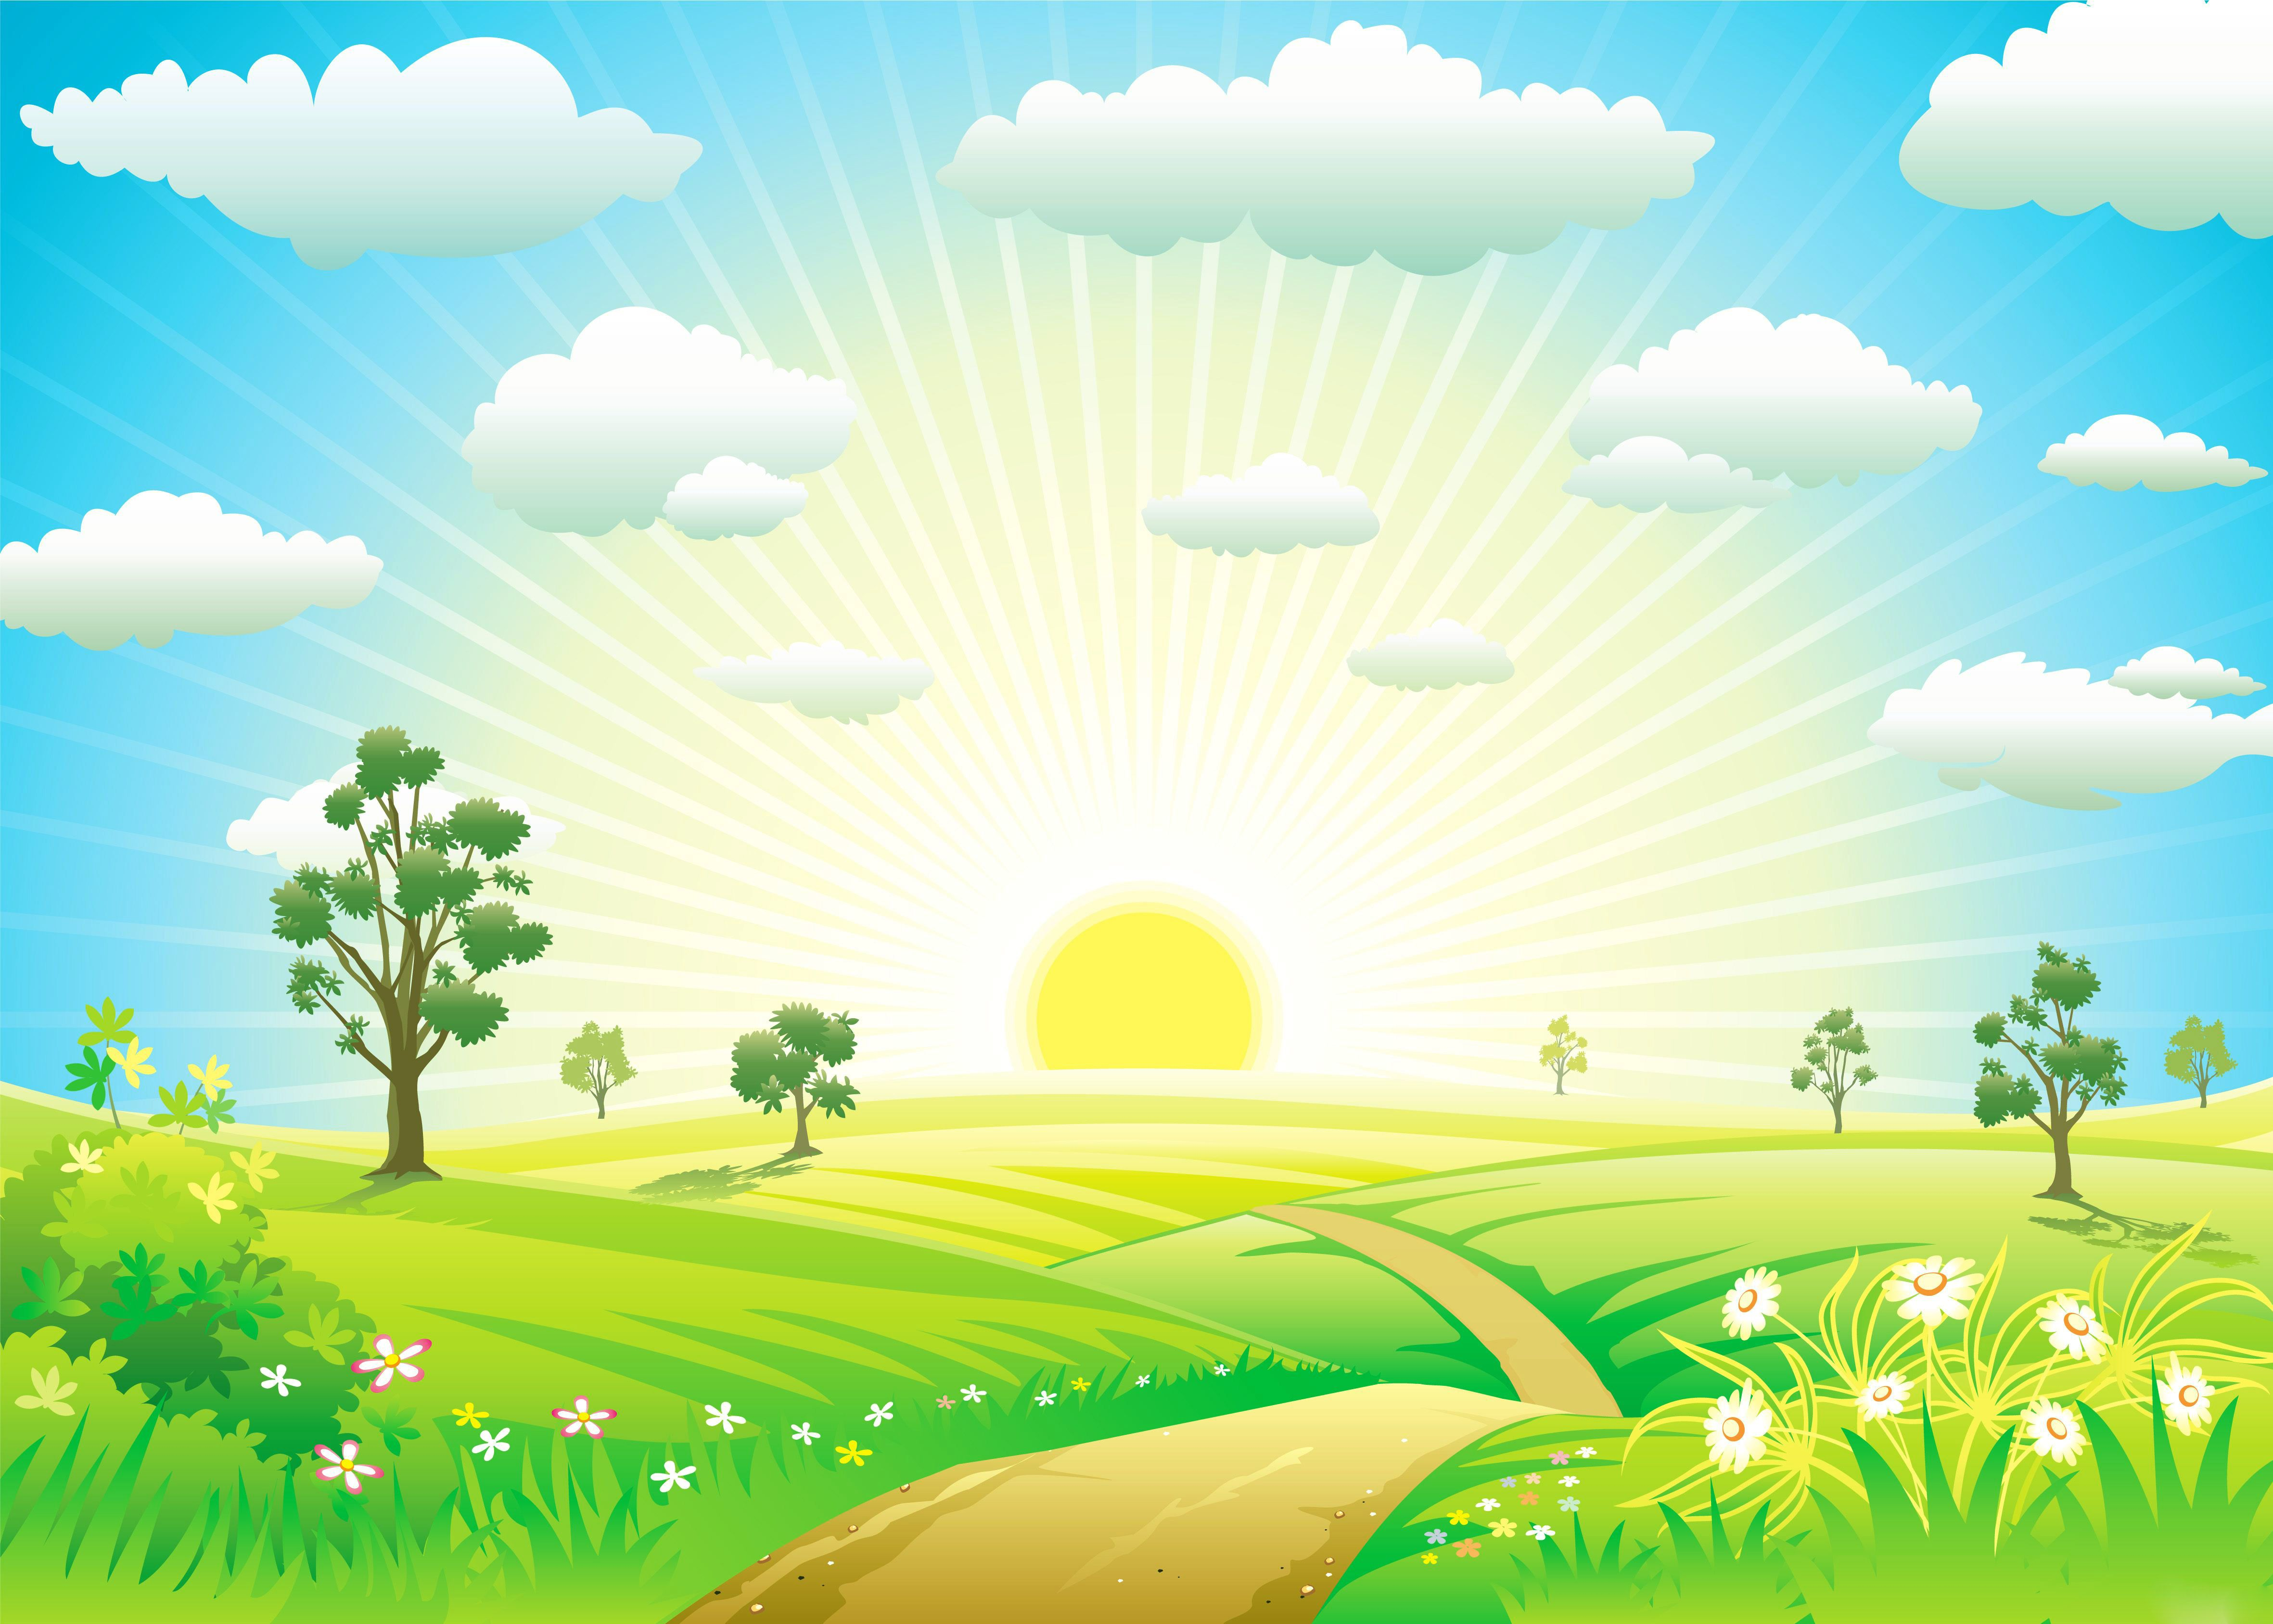 Nature clipart wallpaper clip freeuse library Kids Wallpaper | Png | Kids wallpaper, Sunrise wallpaper ... clip freeuse library